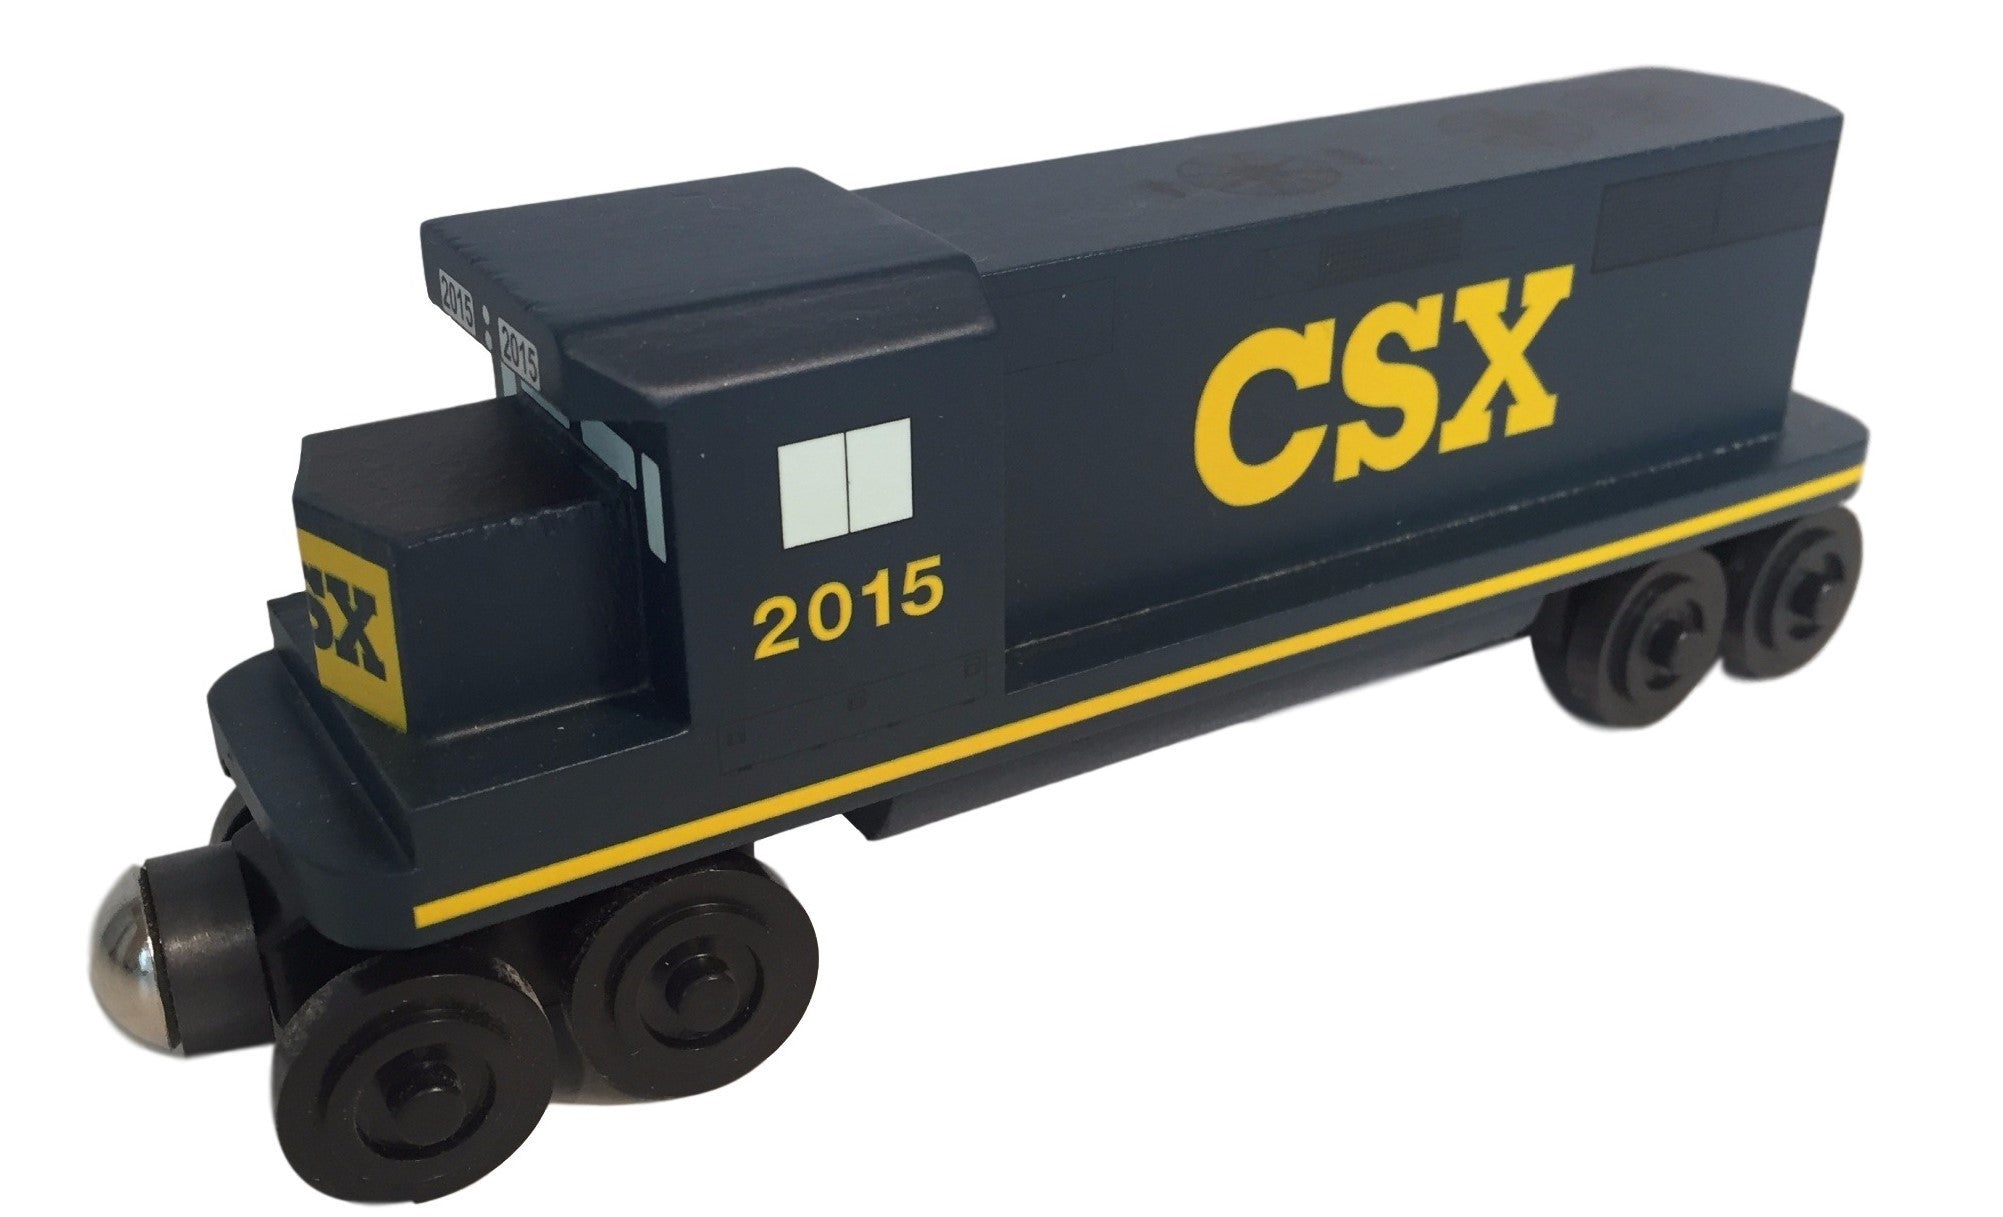 Whittle Shortline Railroad CSX GP-38 Diesel Engine Wooden Toy Train